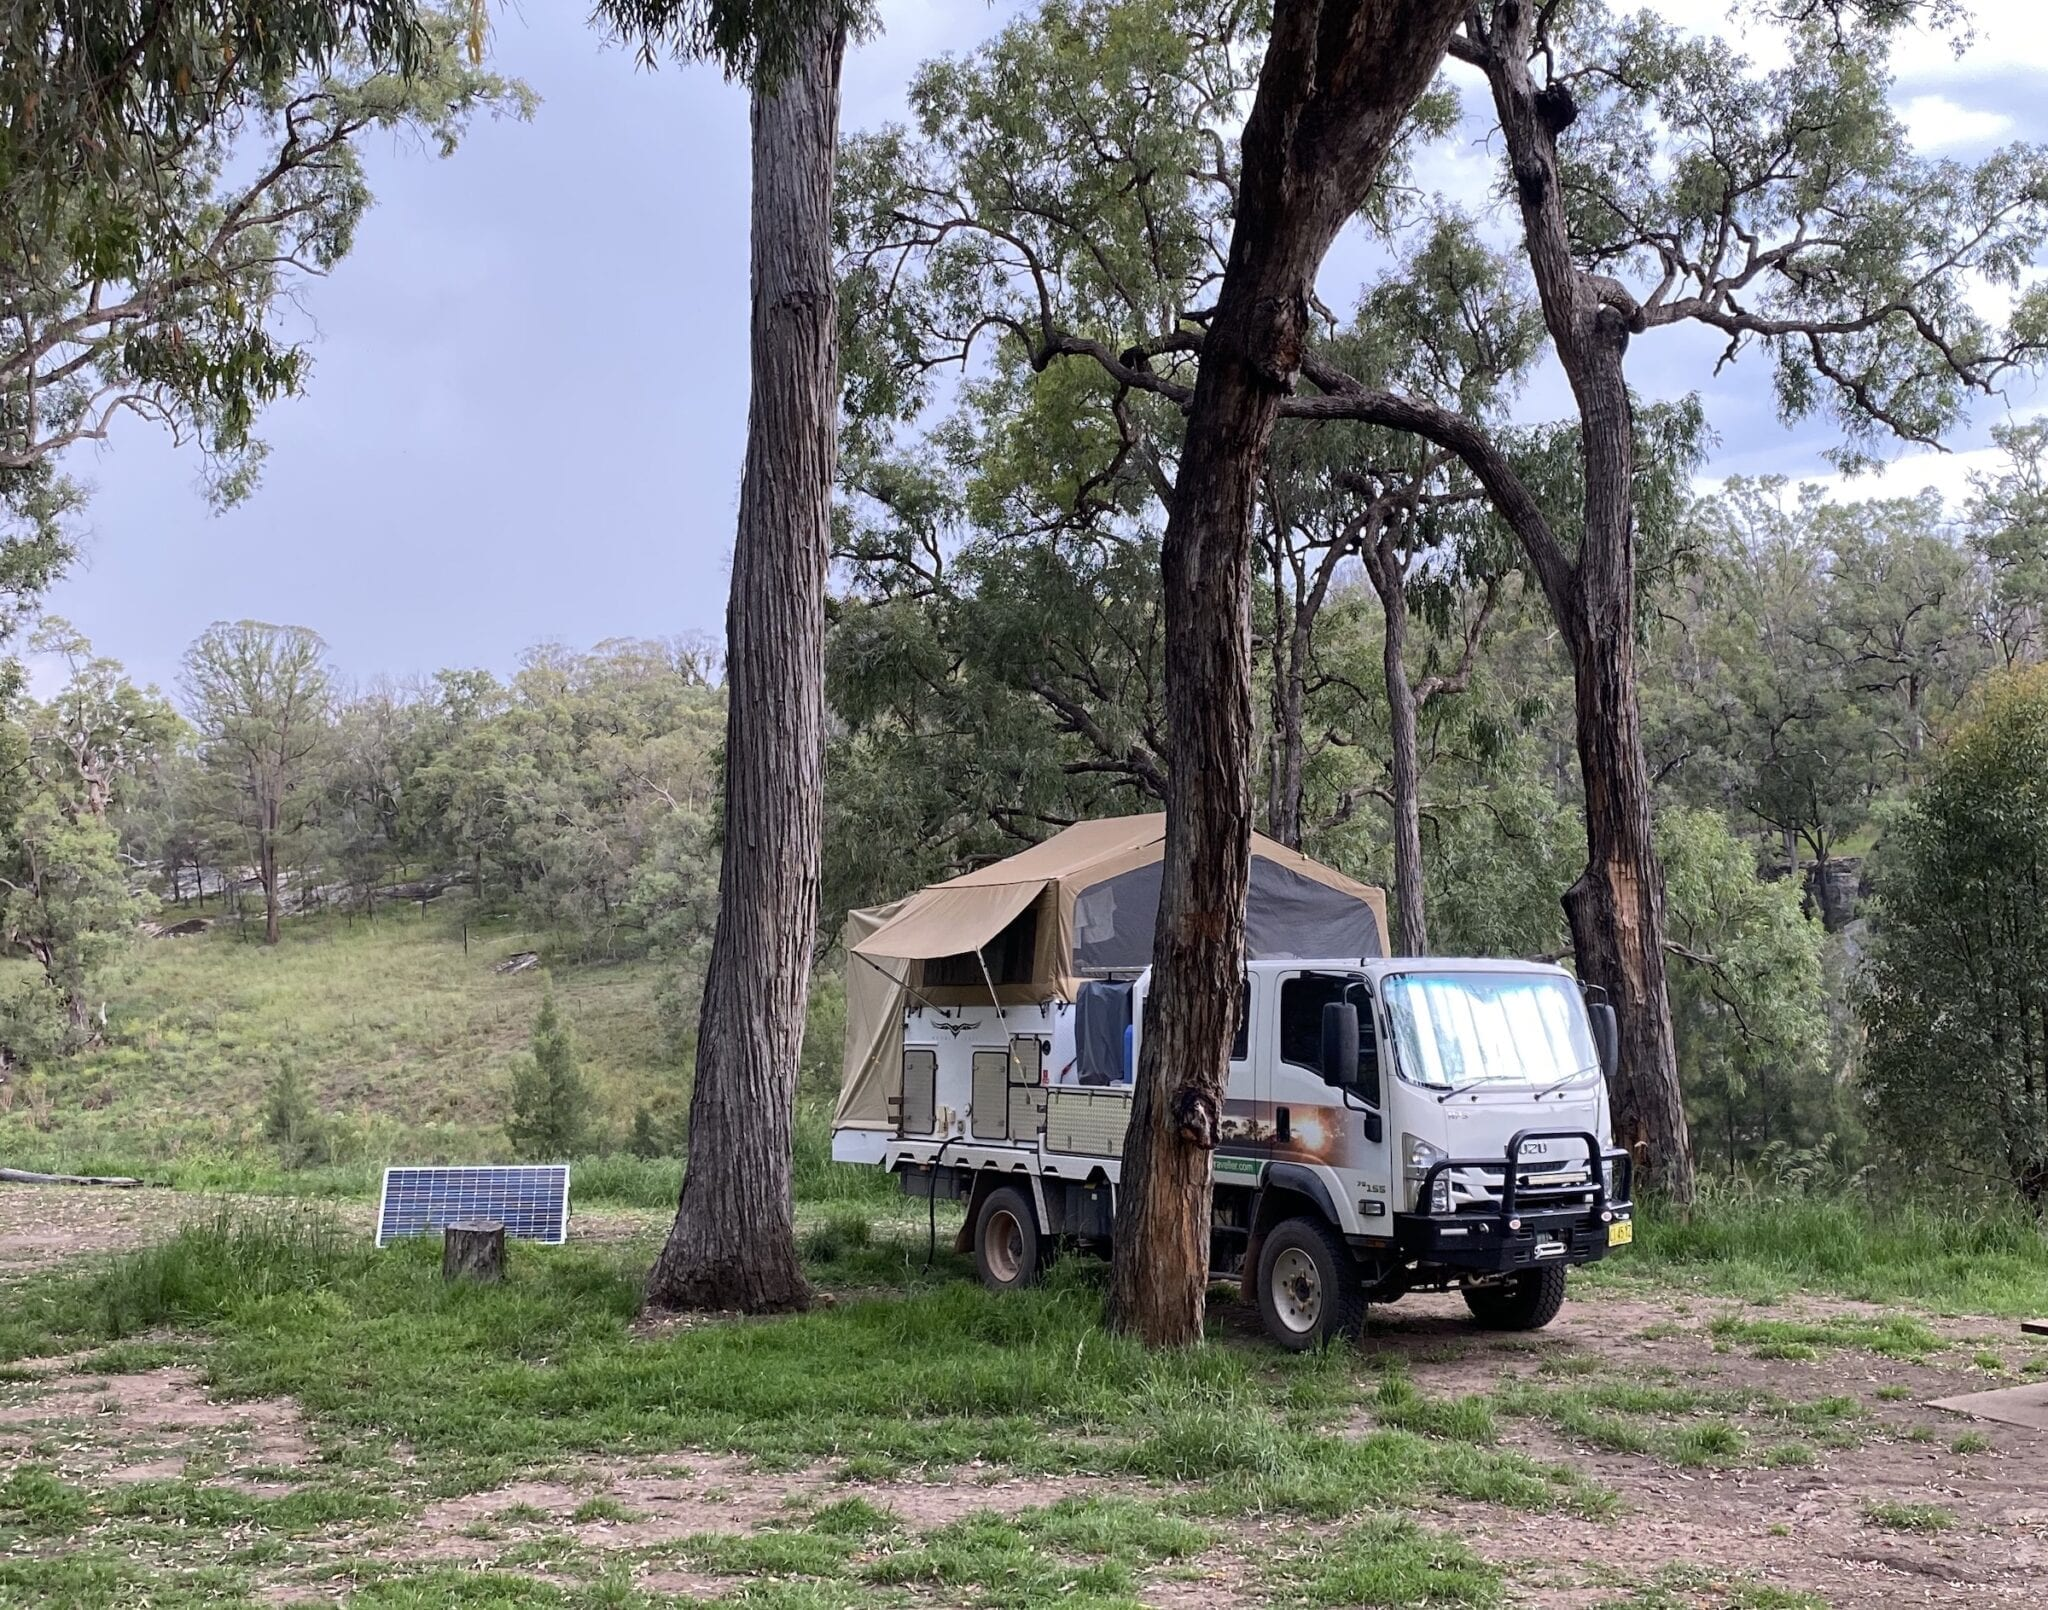 Wedgetail slide on camper and Isuzu 4WD truck camped at Goulburn River National Park.